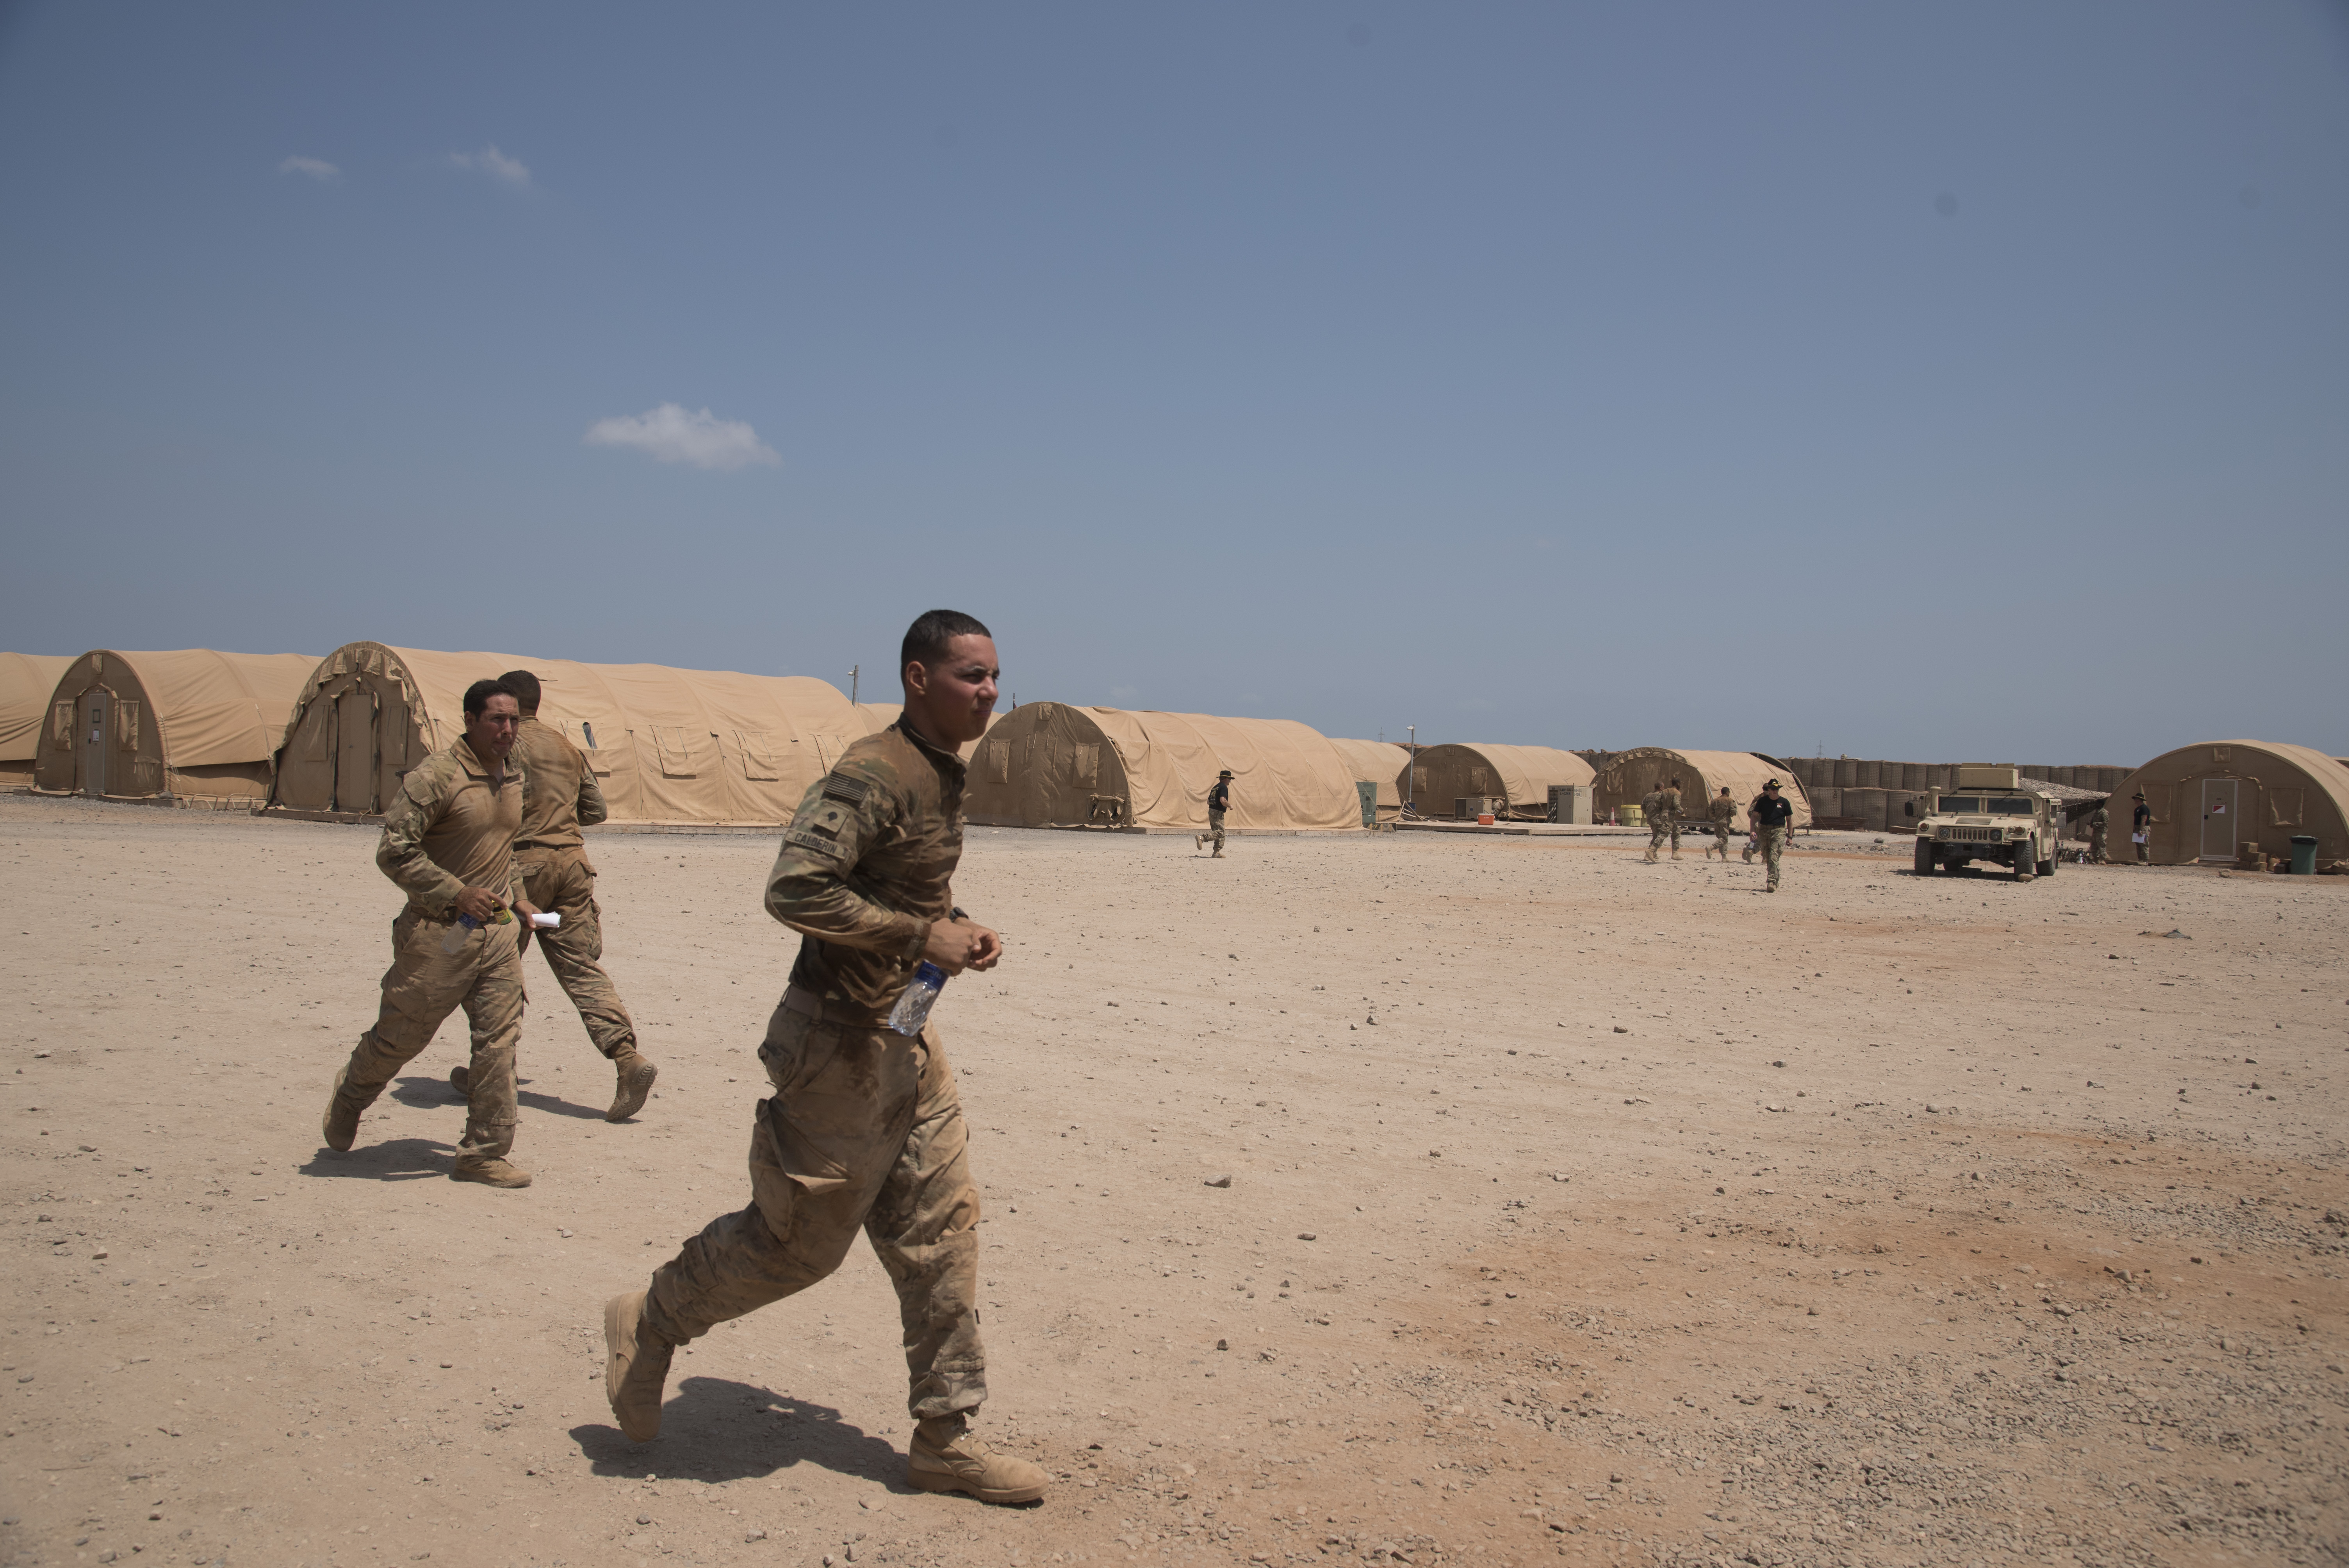 DJIBOUTI- U.S. Army Soldiers with the 1st Squadron, 153rd Cavalry Regiment attached to 1st Battalion, 124th Infantry Regiment, run to their next stress event in an effort to earn their silver spurs as part of a spur ride event, Oct. 21, 2016, at a nearby airfield in Djibouti. The participants completed 10 tasks with various stress events before each task in approximately 19 hours. (U.S. Air Force photo by Staff Sgt. Tiffany DeNault)